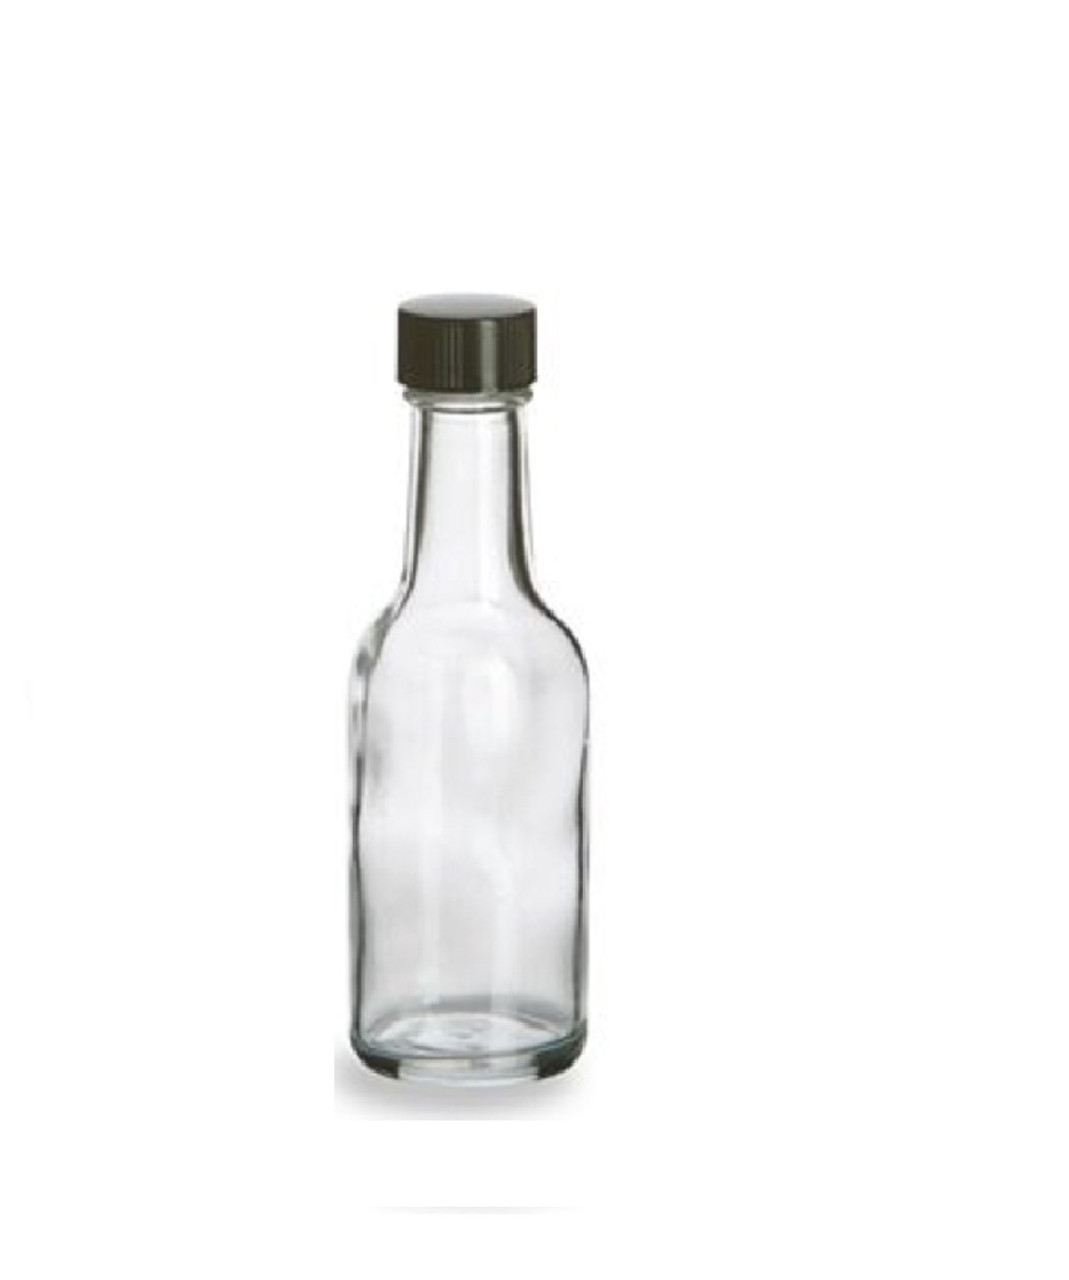 50 ml Round Liquor Glass bottle with Black Cap